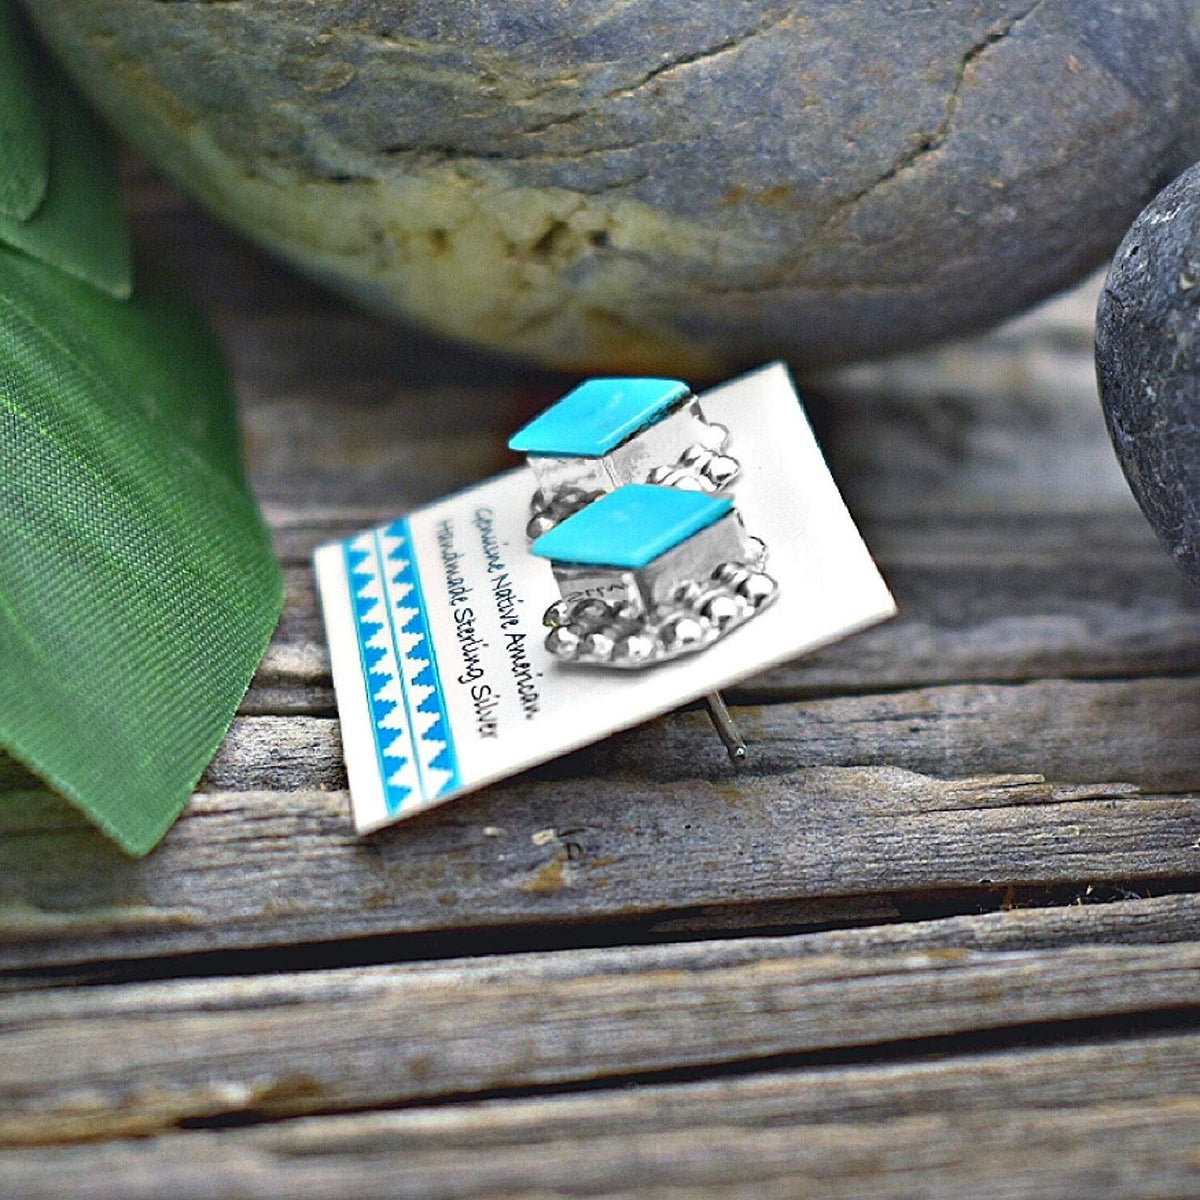 11mm Genuine Sleeping Beauty Turquoise Stud Earrings in 925 Sterling Silver, Diamond Concho Style, Authentic Native American Handmade